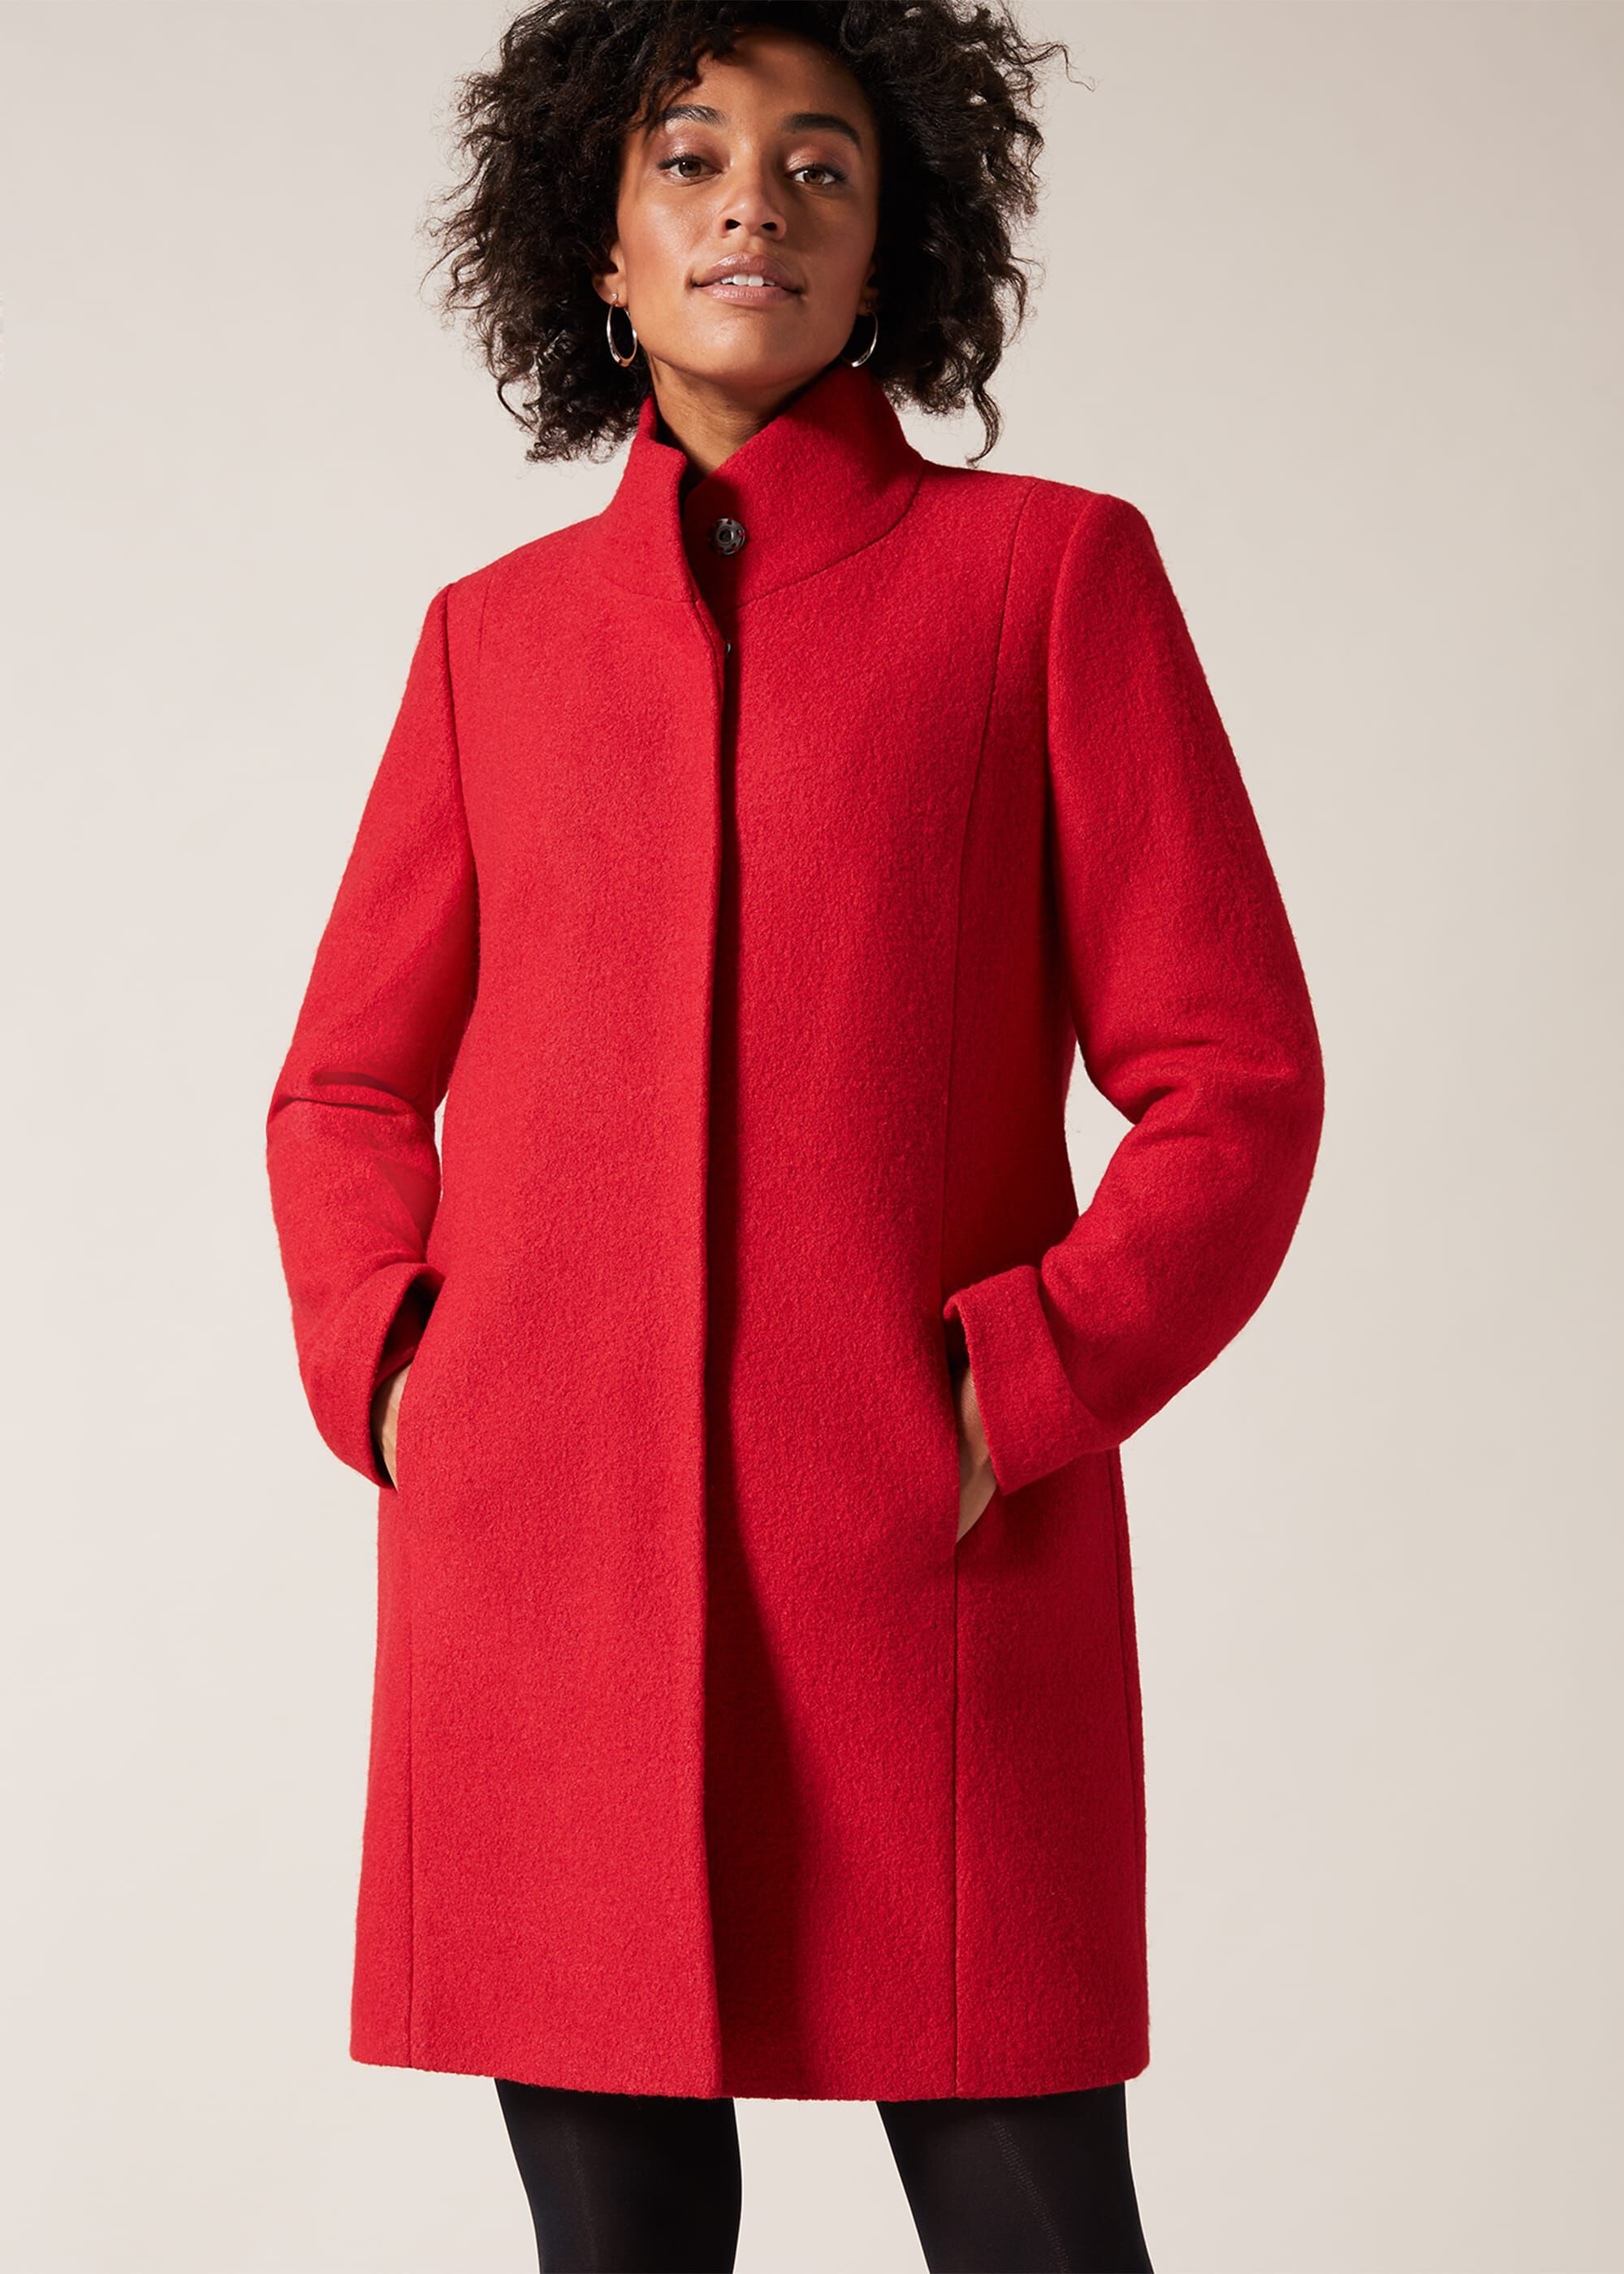 1950s Jackets, Coats, Bolero | Swing, Pin Up, Rockabilly Phase Eight Bailie Boiled Wool Coat Red £129.00 AT vintagedancer.com